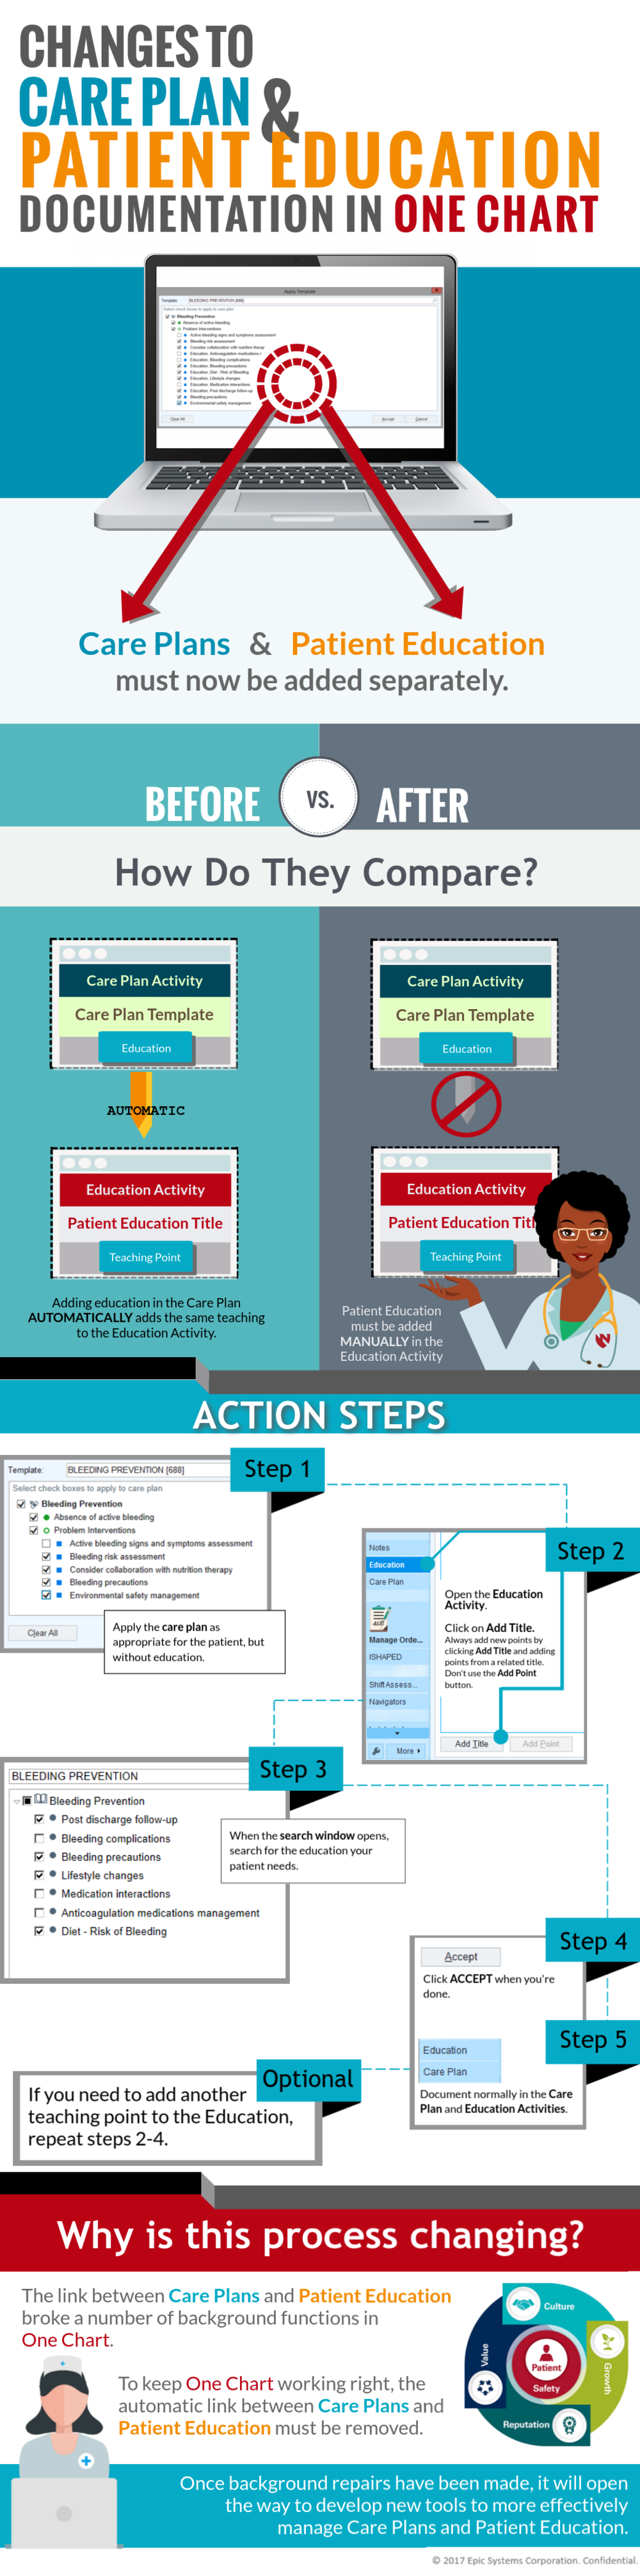 Changes-to-Care-Plan-Patient-Education-in-One-Chart.png